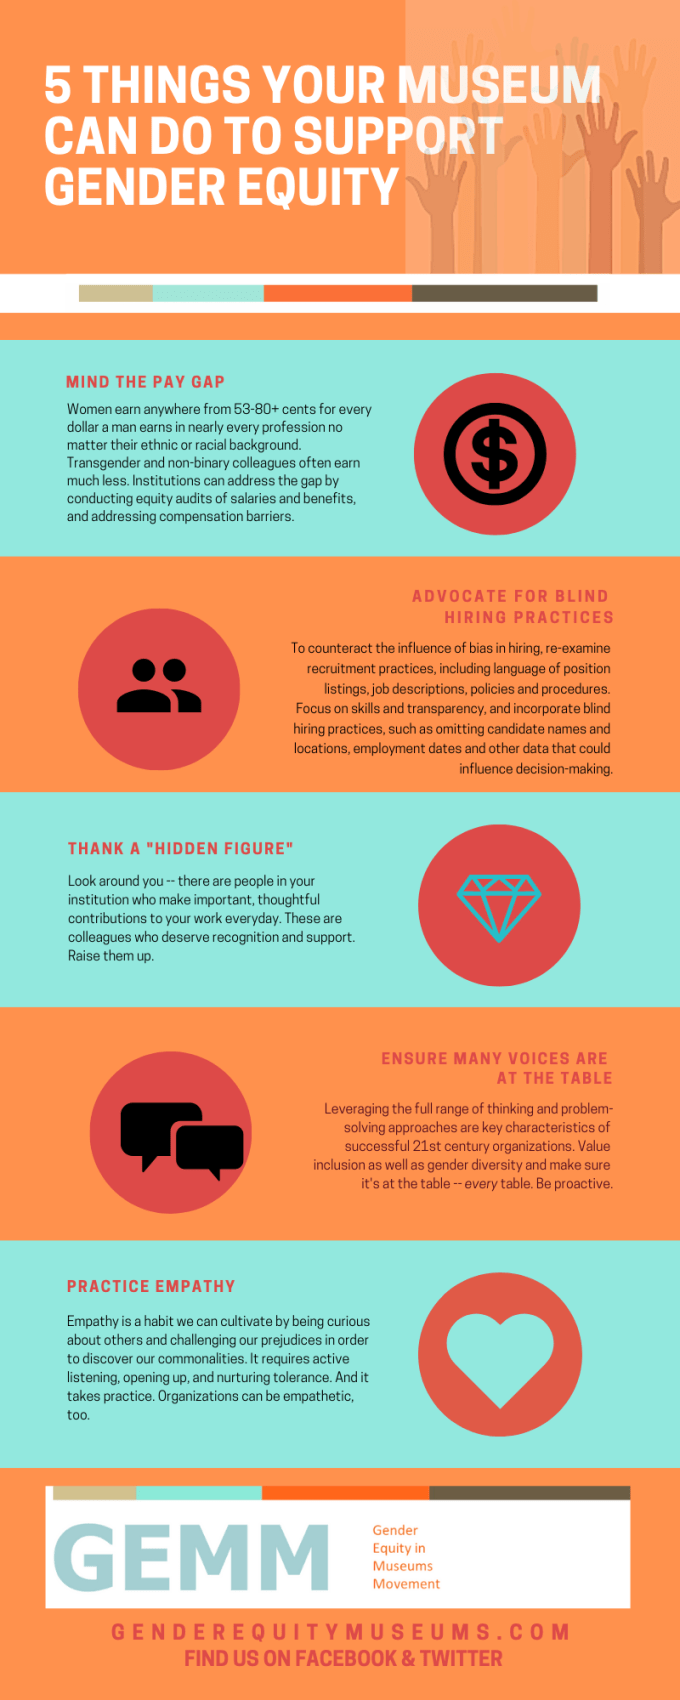 "An infographic titled ""5 Things Your Museum Can Do to Support Gender Equity."" The five things are to ""Mind the Pay Gap: Women earn anywhere from 53-80+ cents for every dollar a man earns in nearly every profession no matter their ethnic or racial background. Transgender and non-binary colleagues often earn much less. Institutions can address the gap by conducting equity audits of salaries and benefits, and addressing compensation barriers,"" ""Advocate for Blind Hiring Practices: To counteract the influence of bias in hiring, re-examine recruitment practices, including language of position listings, job descriptions, policies and procedures. Focus on skills and transparency, and incorporate blind hiring practices, such as omitting candidate names and locations, employment dates and other data that could influence decision-making,"" ""Thank a Hidden Figure: Look around you--there are people in your institution who make important, thoughtful contributions to your work everyday. These are colleagues who deserve recognition and support. Raise them up,"" ""Ensure Many Voices Are at the Table: Leveraging the full range of thinking and problem-solving approaches are key characteristics of successful 21st century organizations. Value inclusion as well as gender diversity and make sure it is at the table--<em>every</em> table. Be proactive,"" and ""Practice Empathy: Empathy is a habit we can cultivate by being curious about others and challenging our prejudices in order to discover our commonalities. It requires active listening, opening up, and nurturing tolerance. And it takes practice. Organizations can be empathetic, too."" At the bottom is the logo for GEMM, Gender Equity in Museums Movement, a URL to their site at genderequitymuseums.com, and a note to ""find us on Facebook and Twitter."""